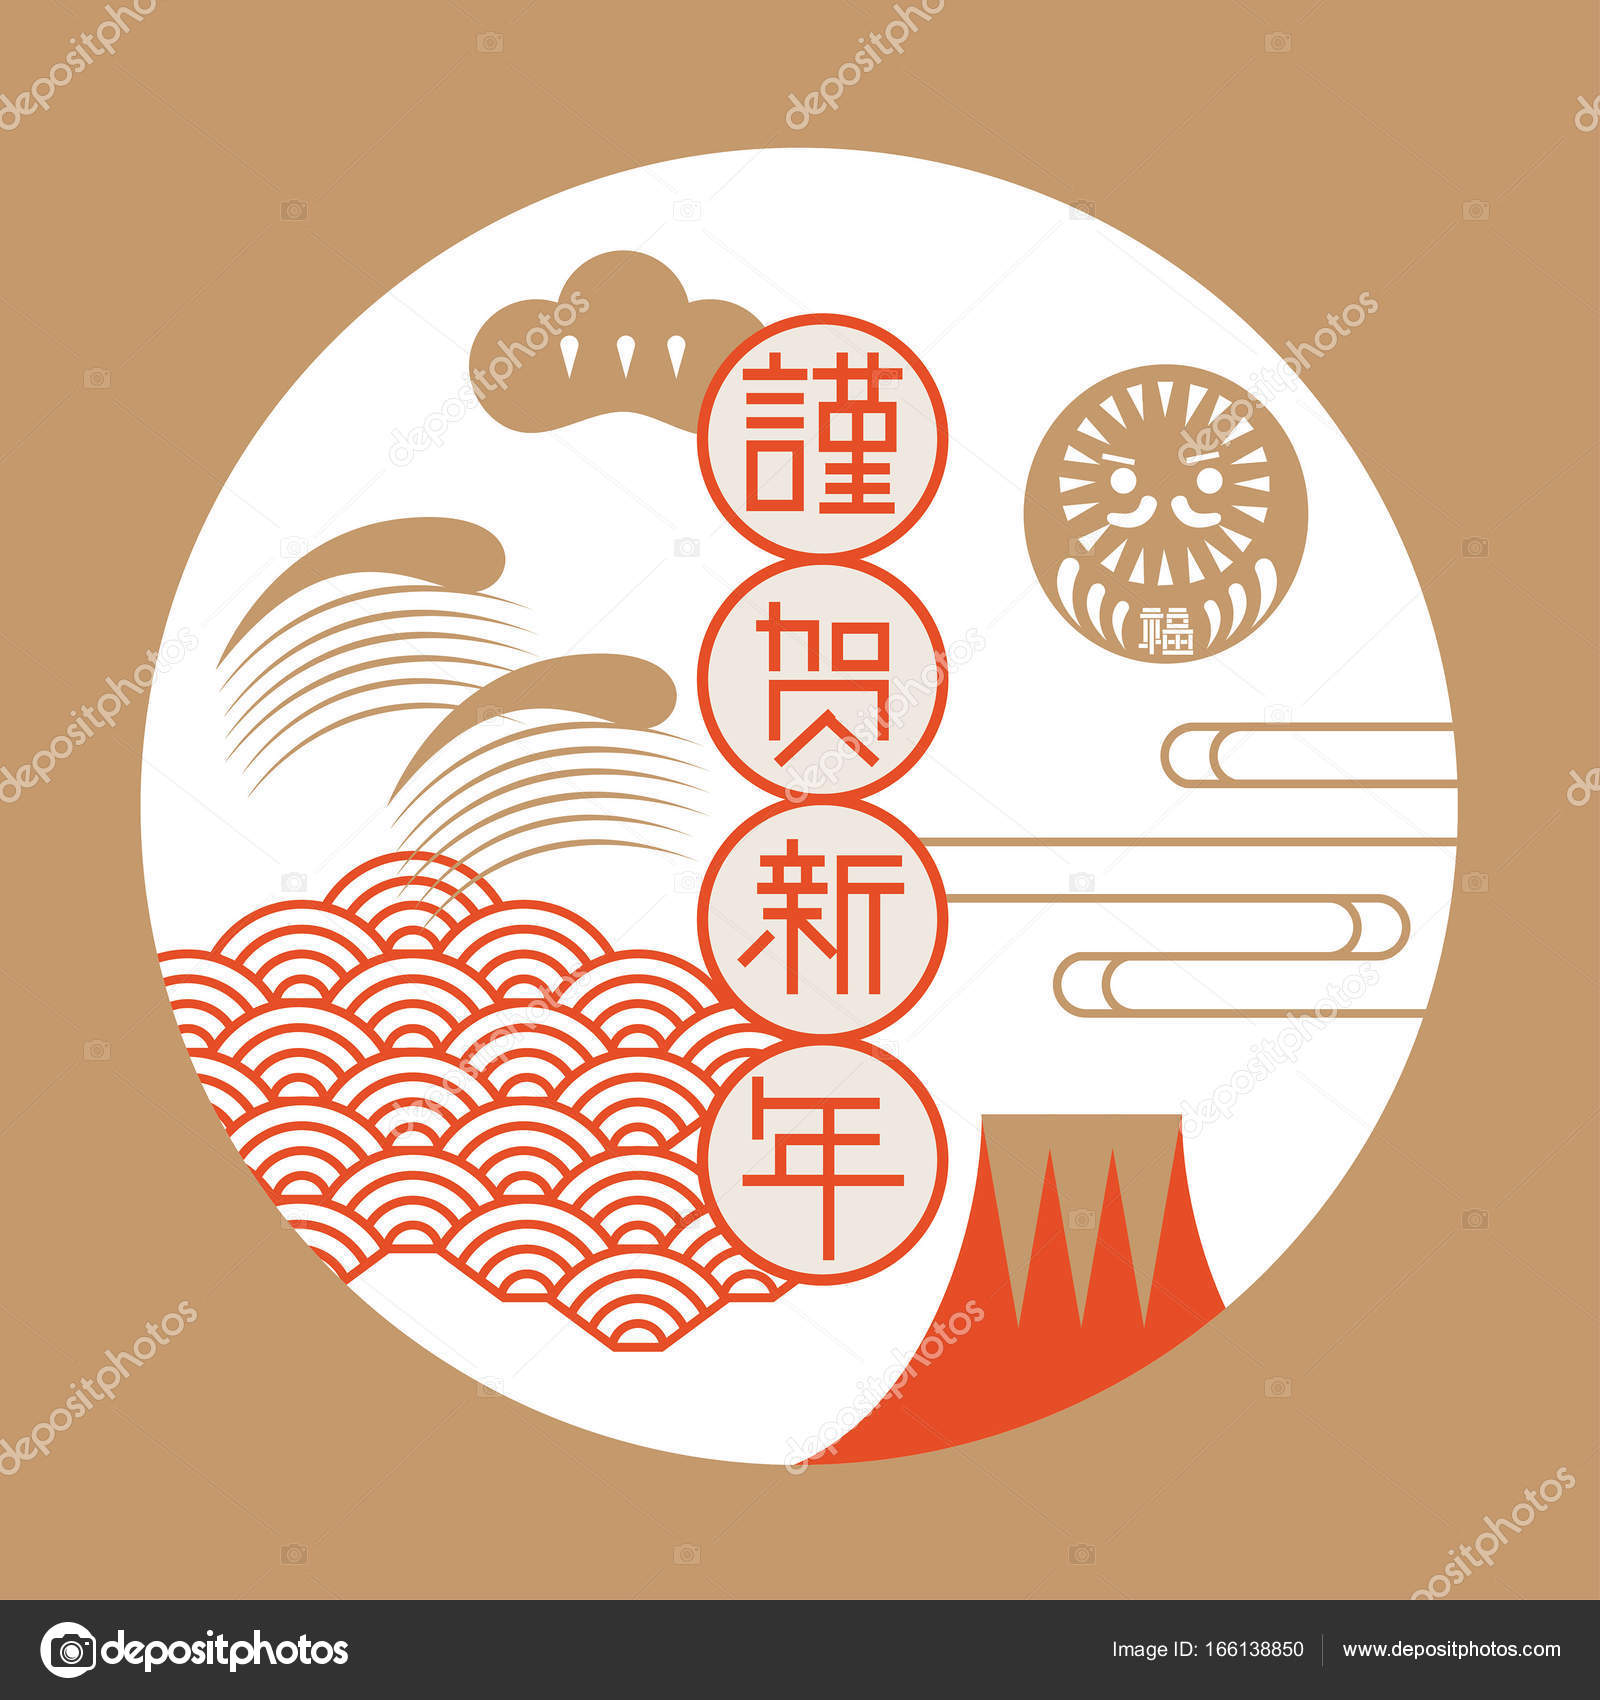 Japanese new year greetings stock vector nanano 166138850 japanese new year greetings stock vector m4hsunfo